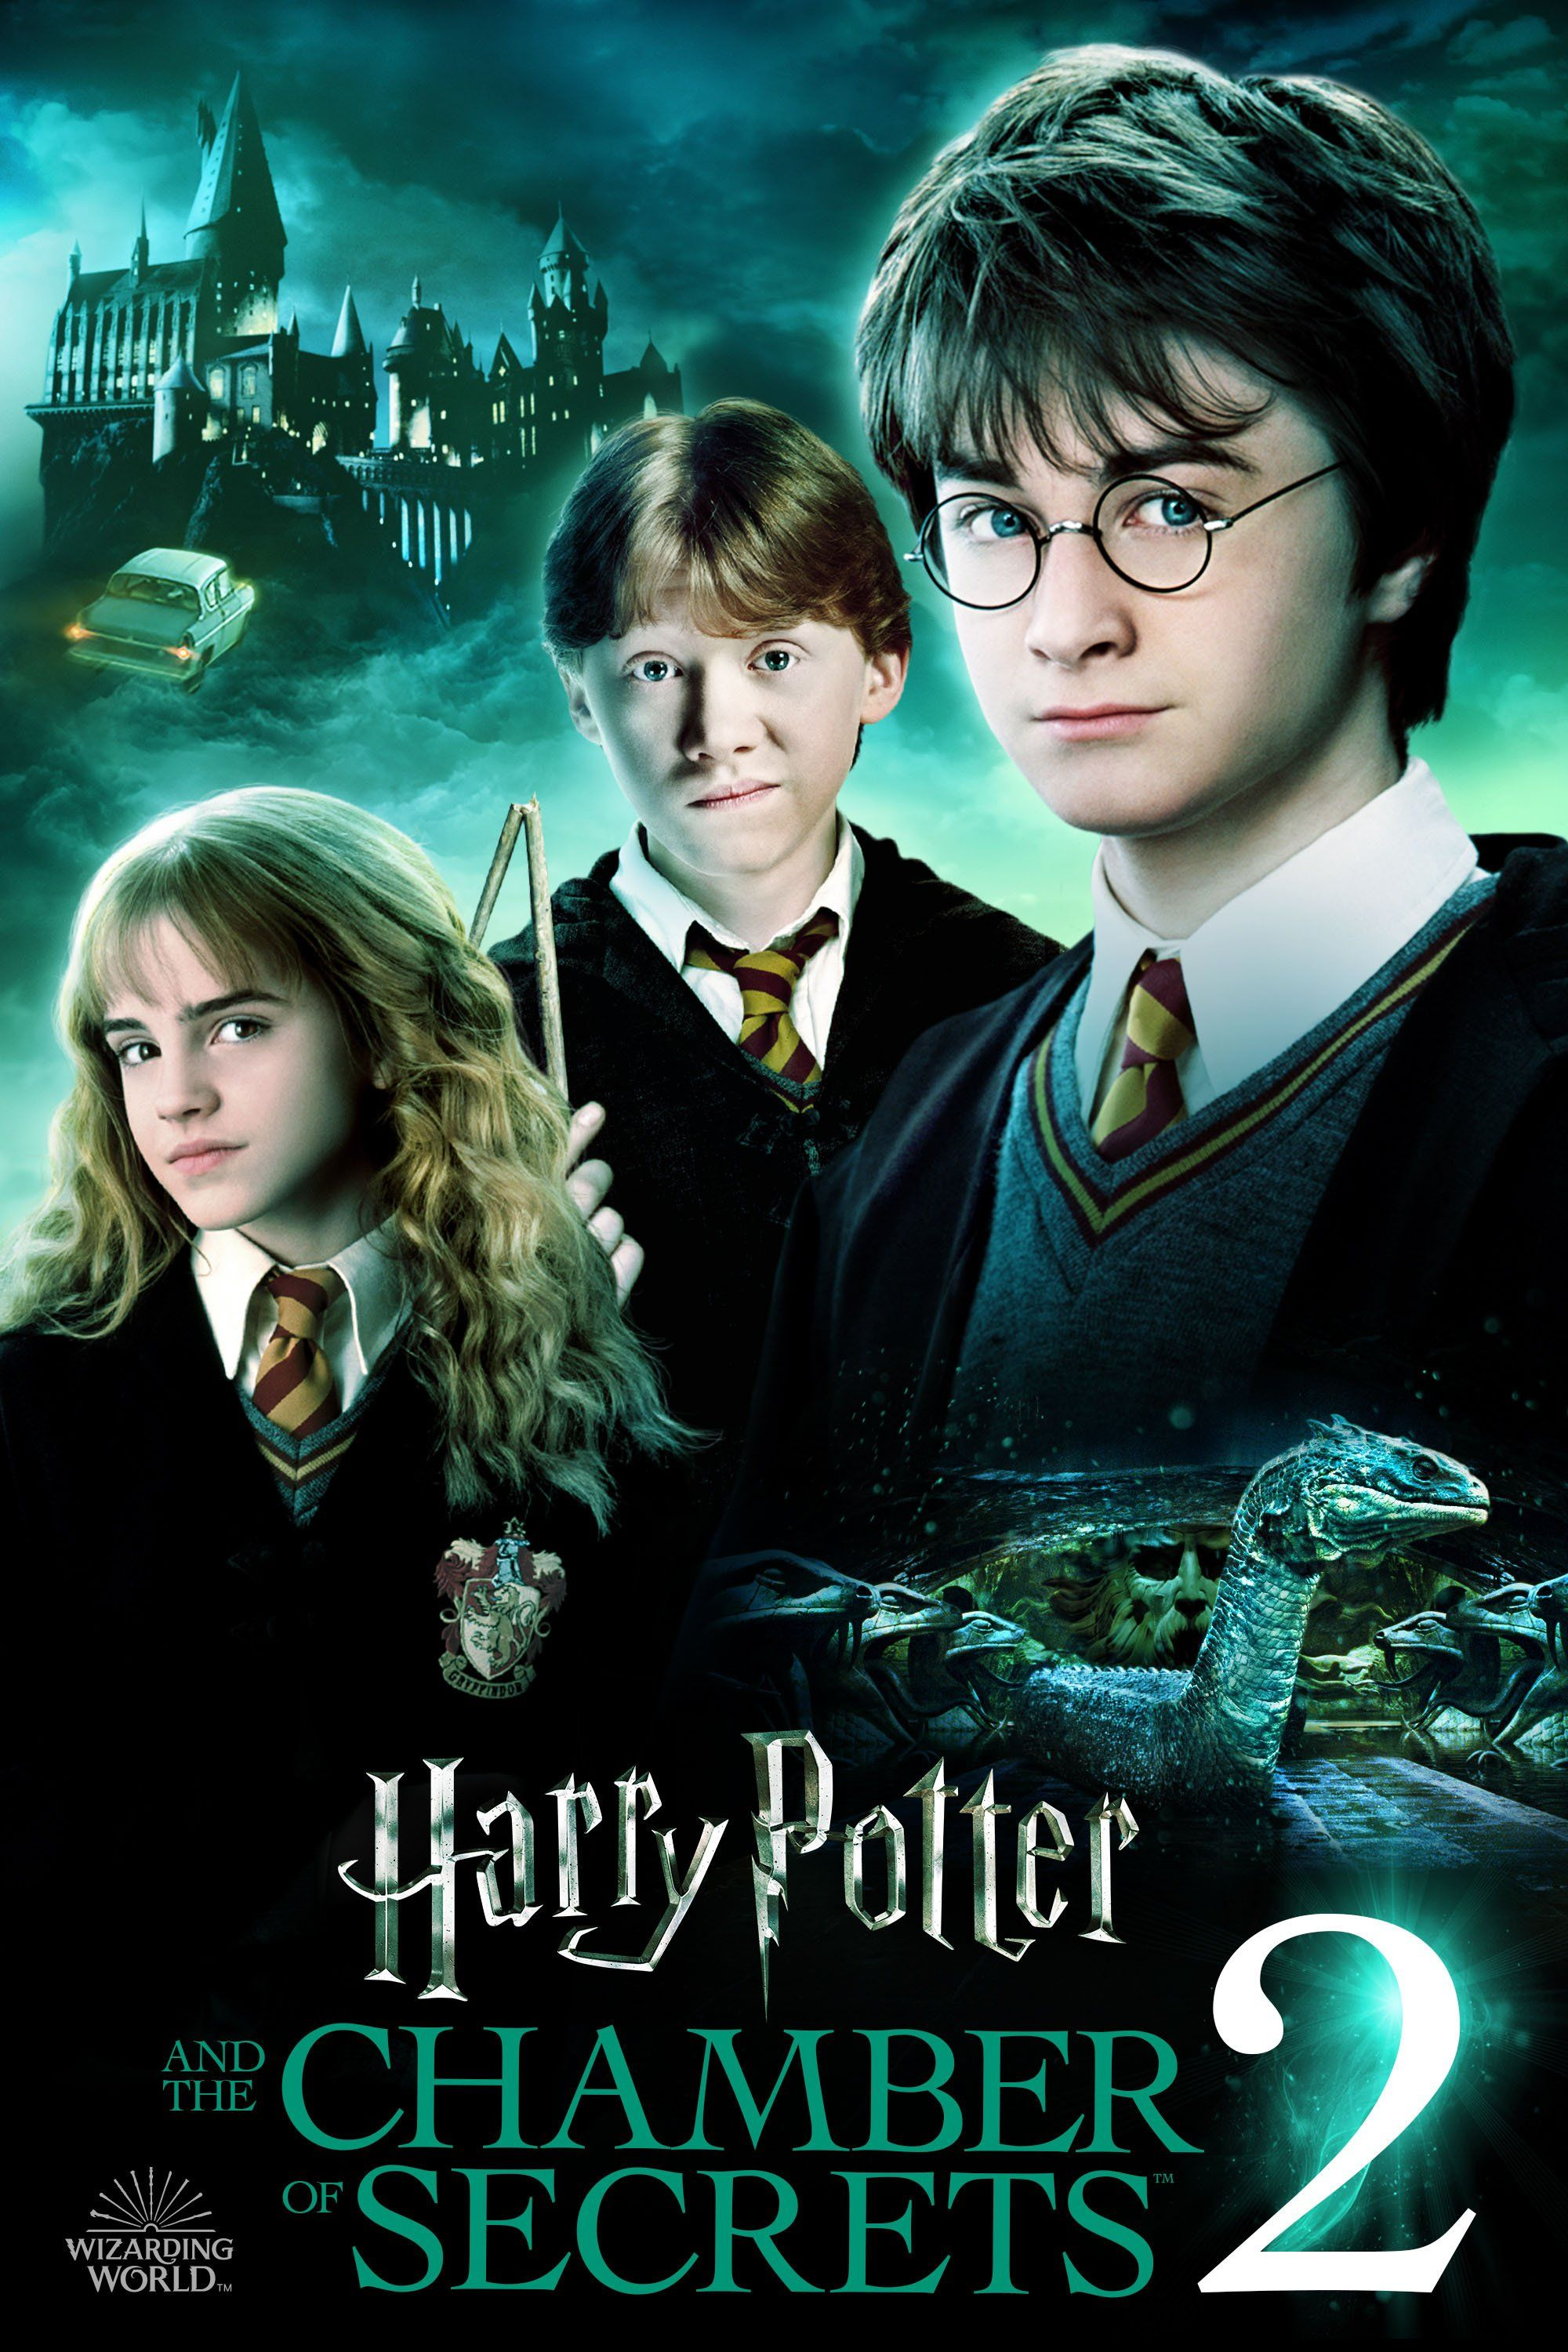 Pin Von Rose Harry Potter Auf F 2002 Hp And The Chamber Of Secrets Harry Potter Film Kammer Des Schreckens Harry Potter 2